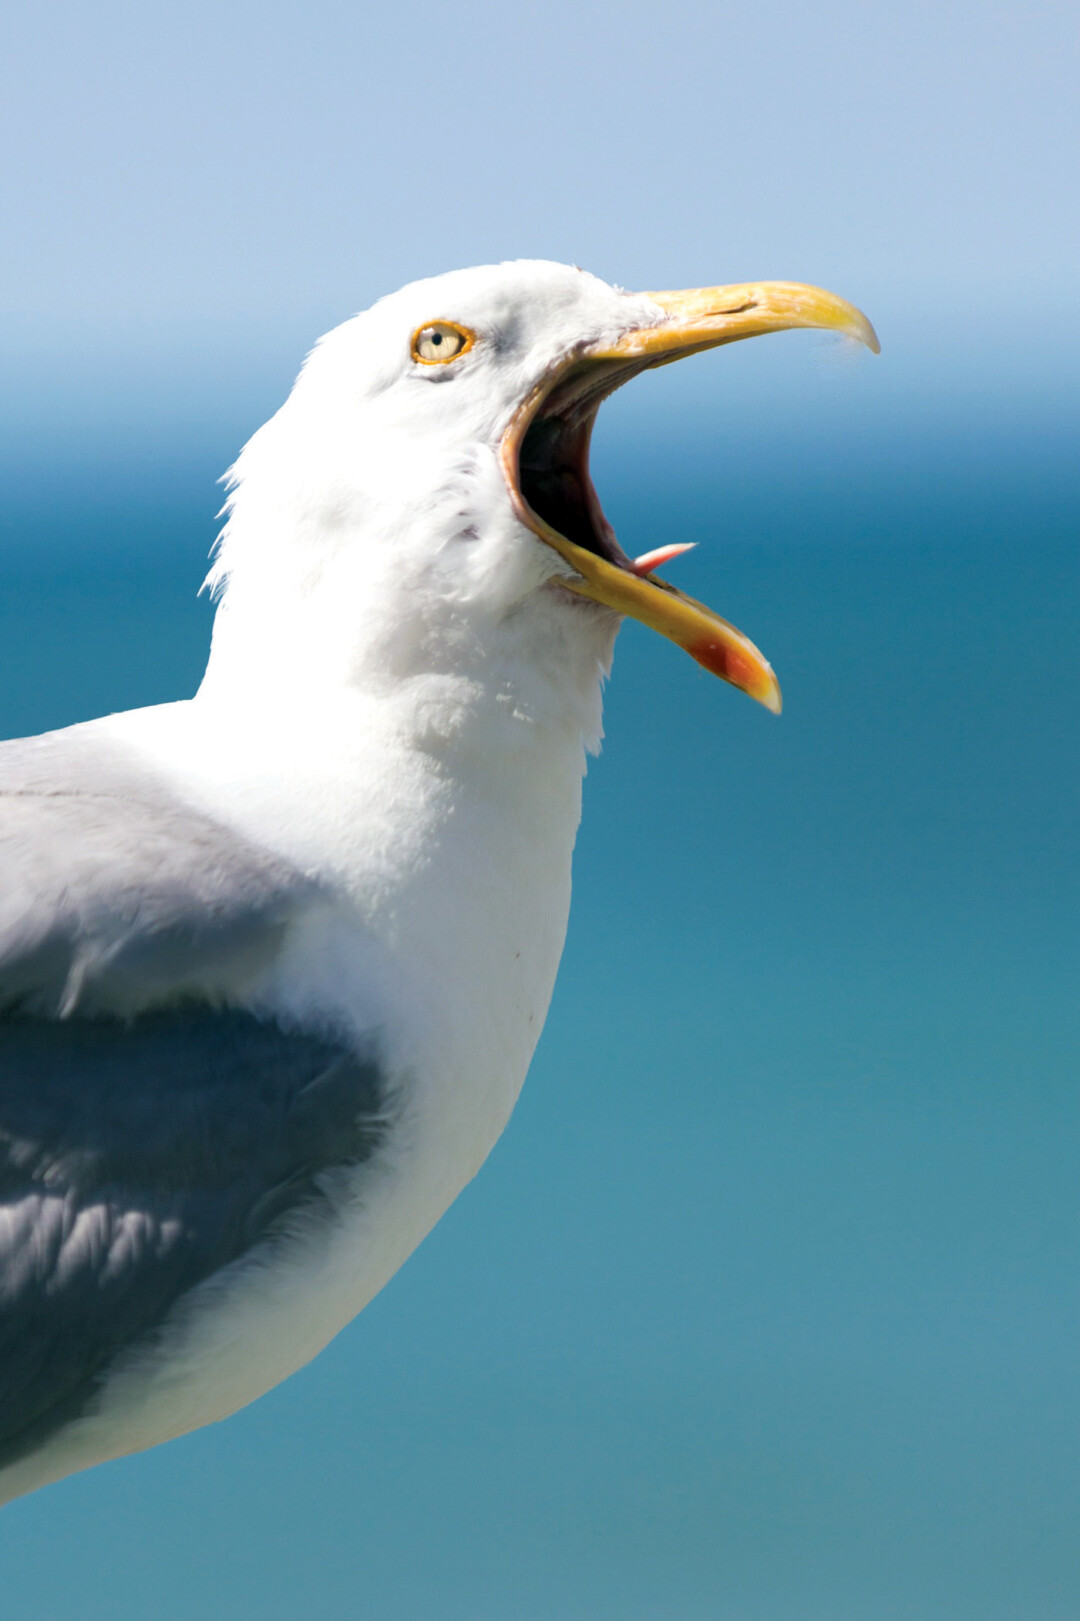 A seagull (shown here screeching).